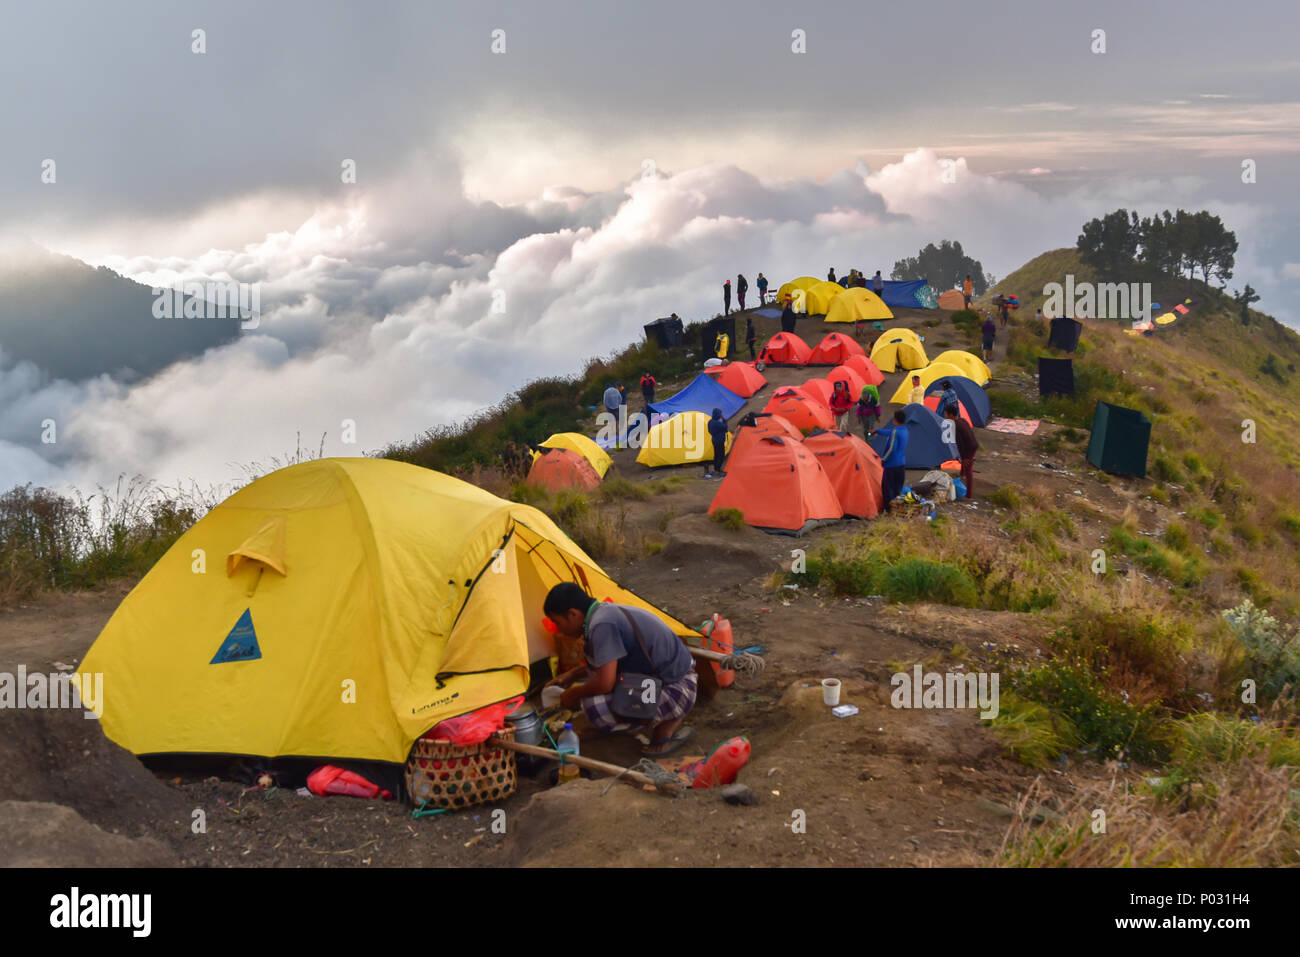 Tents of the hikers at Crater Lake of Rinjani Volcano, Lombok - Stock Image